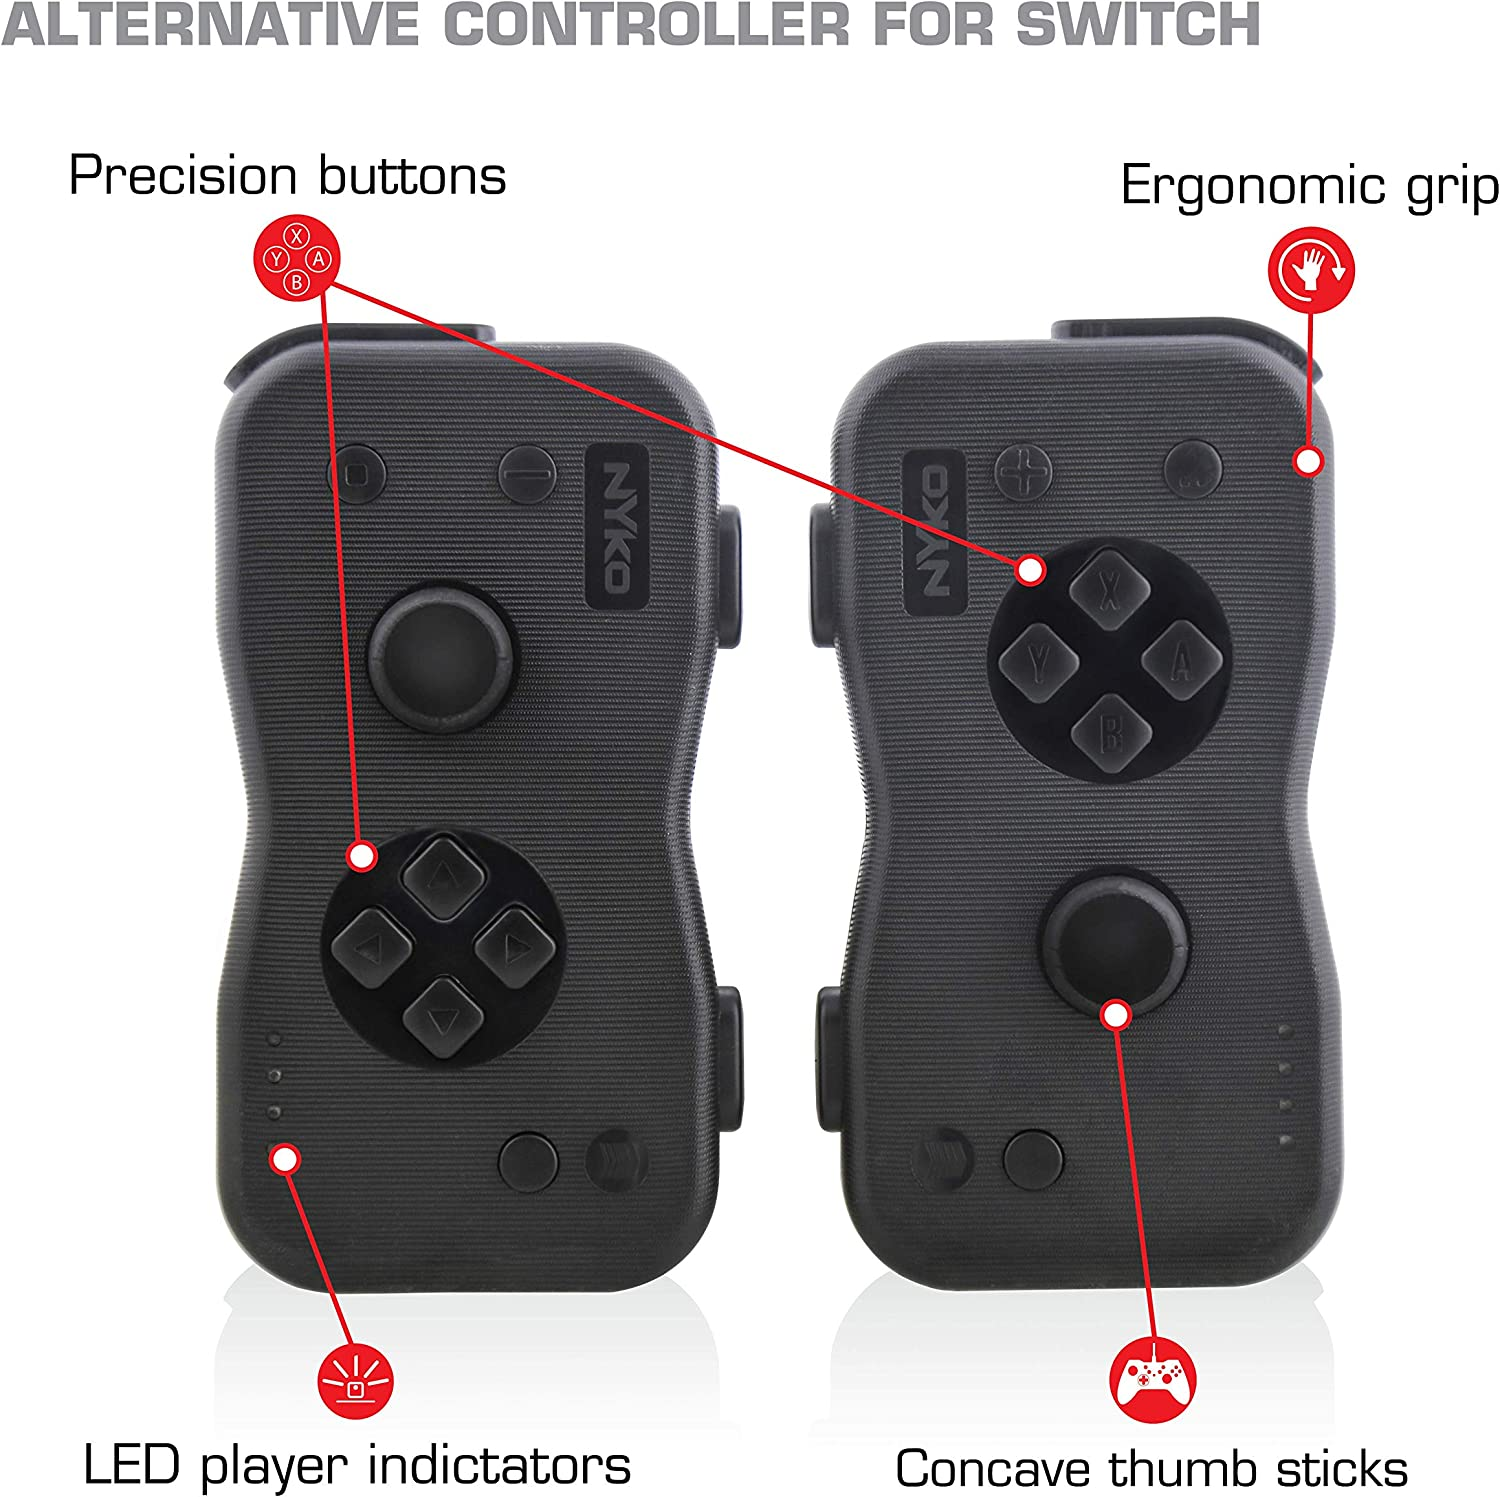 Nyko Dualies - Pair of Motion Controllers with Included USB Type-C Charging Cable, Joy-Con Alternative for Nintendo Switch [video game]: Amazon.es: Videojuegos